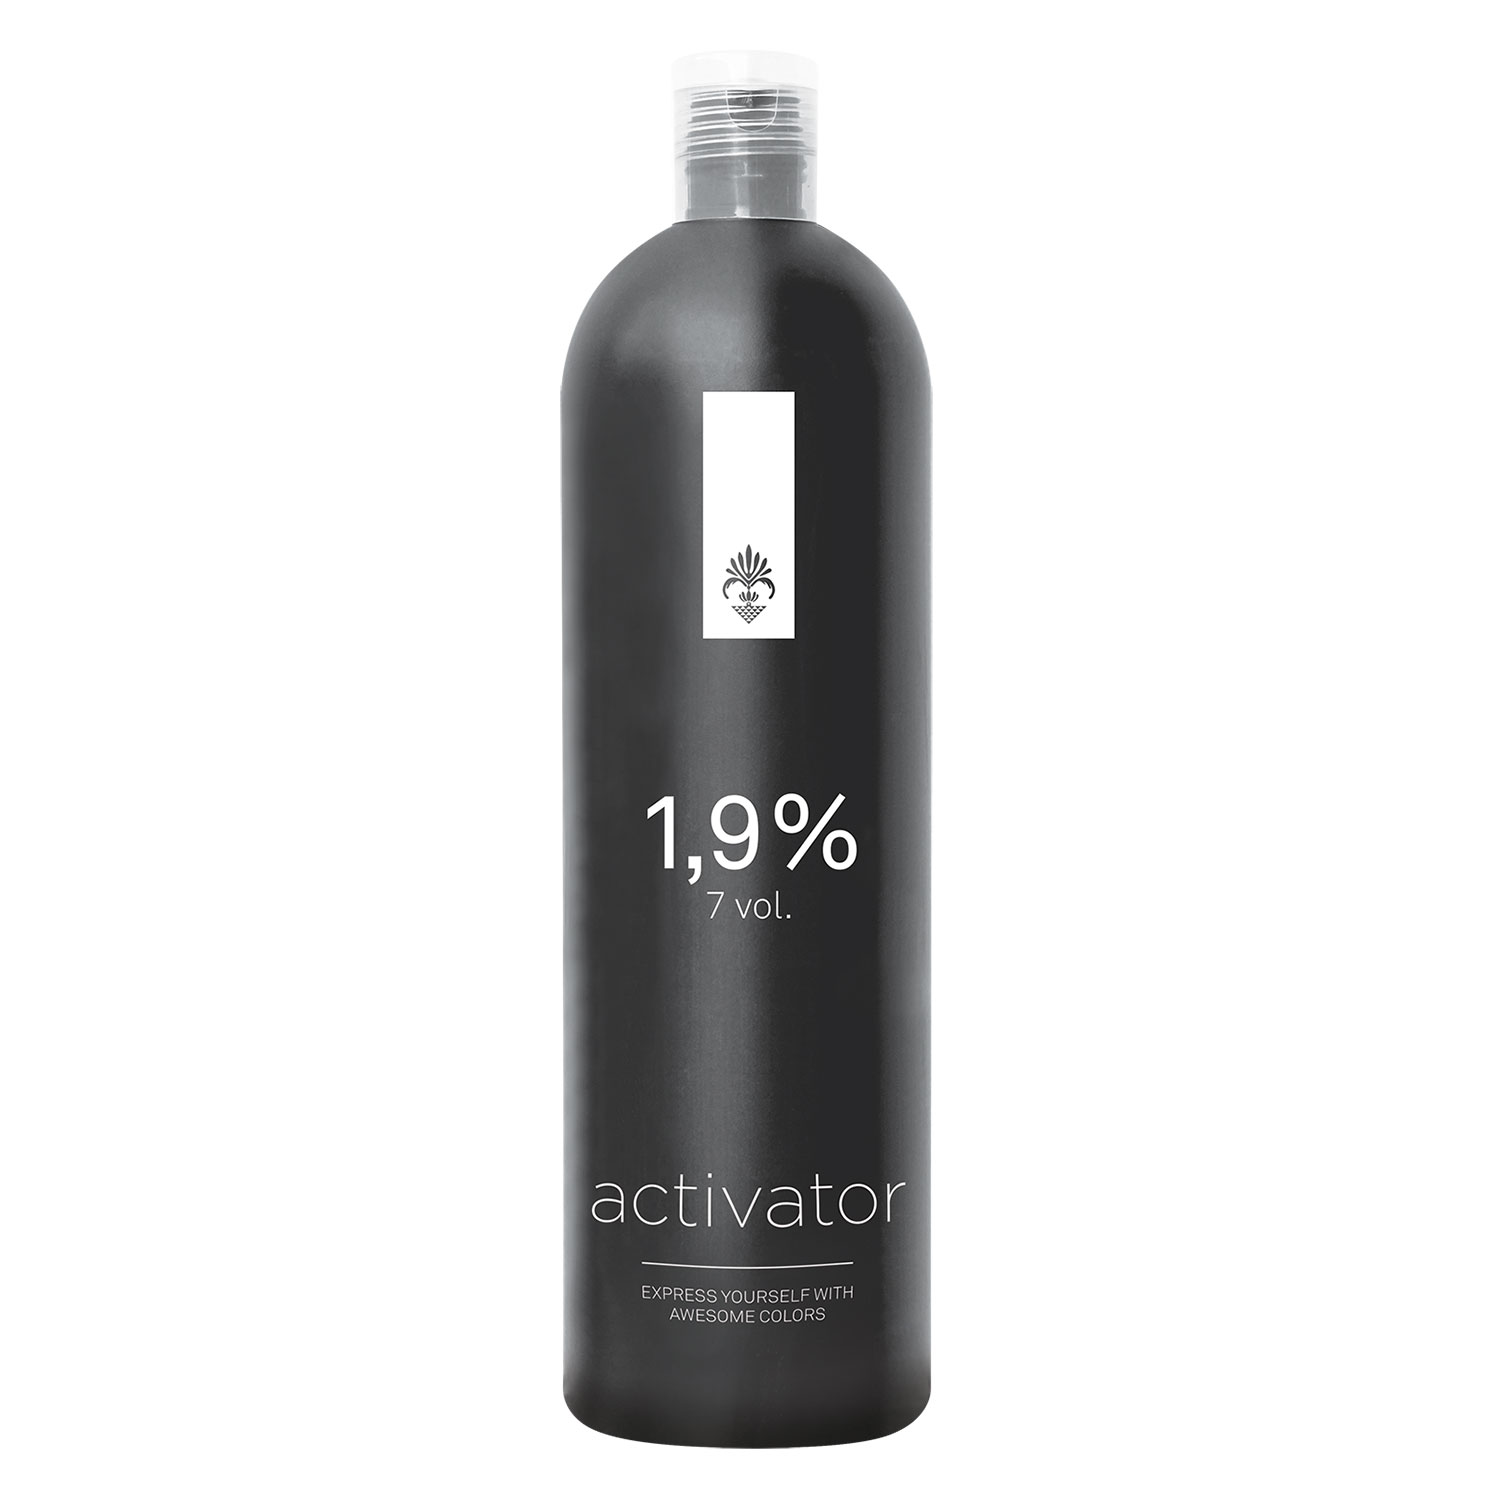 AWESOMEcolors - Activator-Tönungsemuls. 1.9%